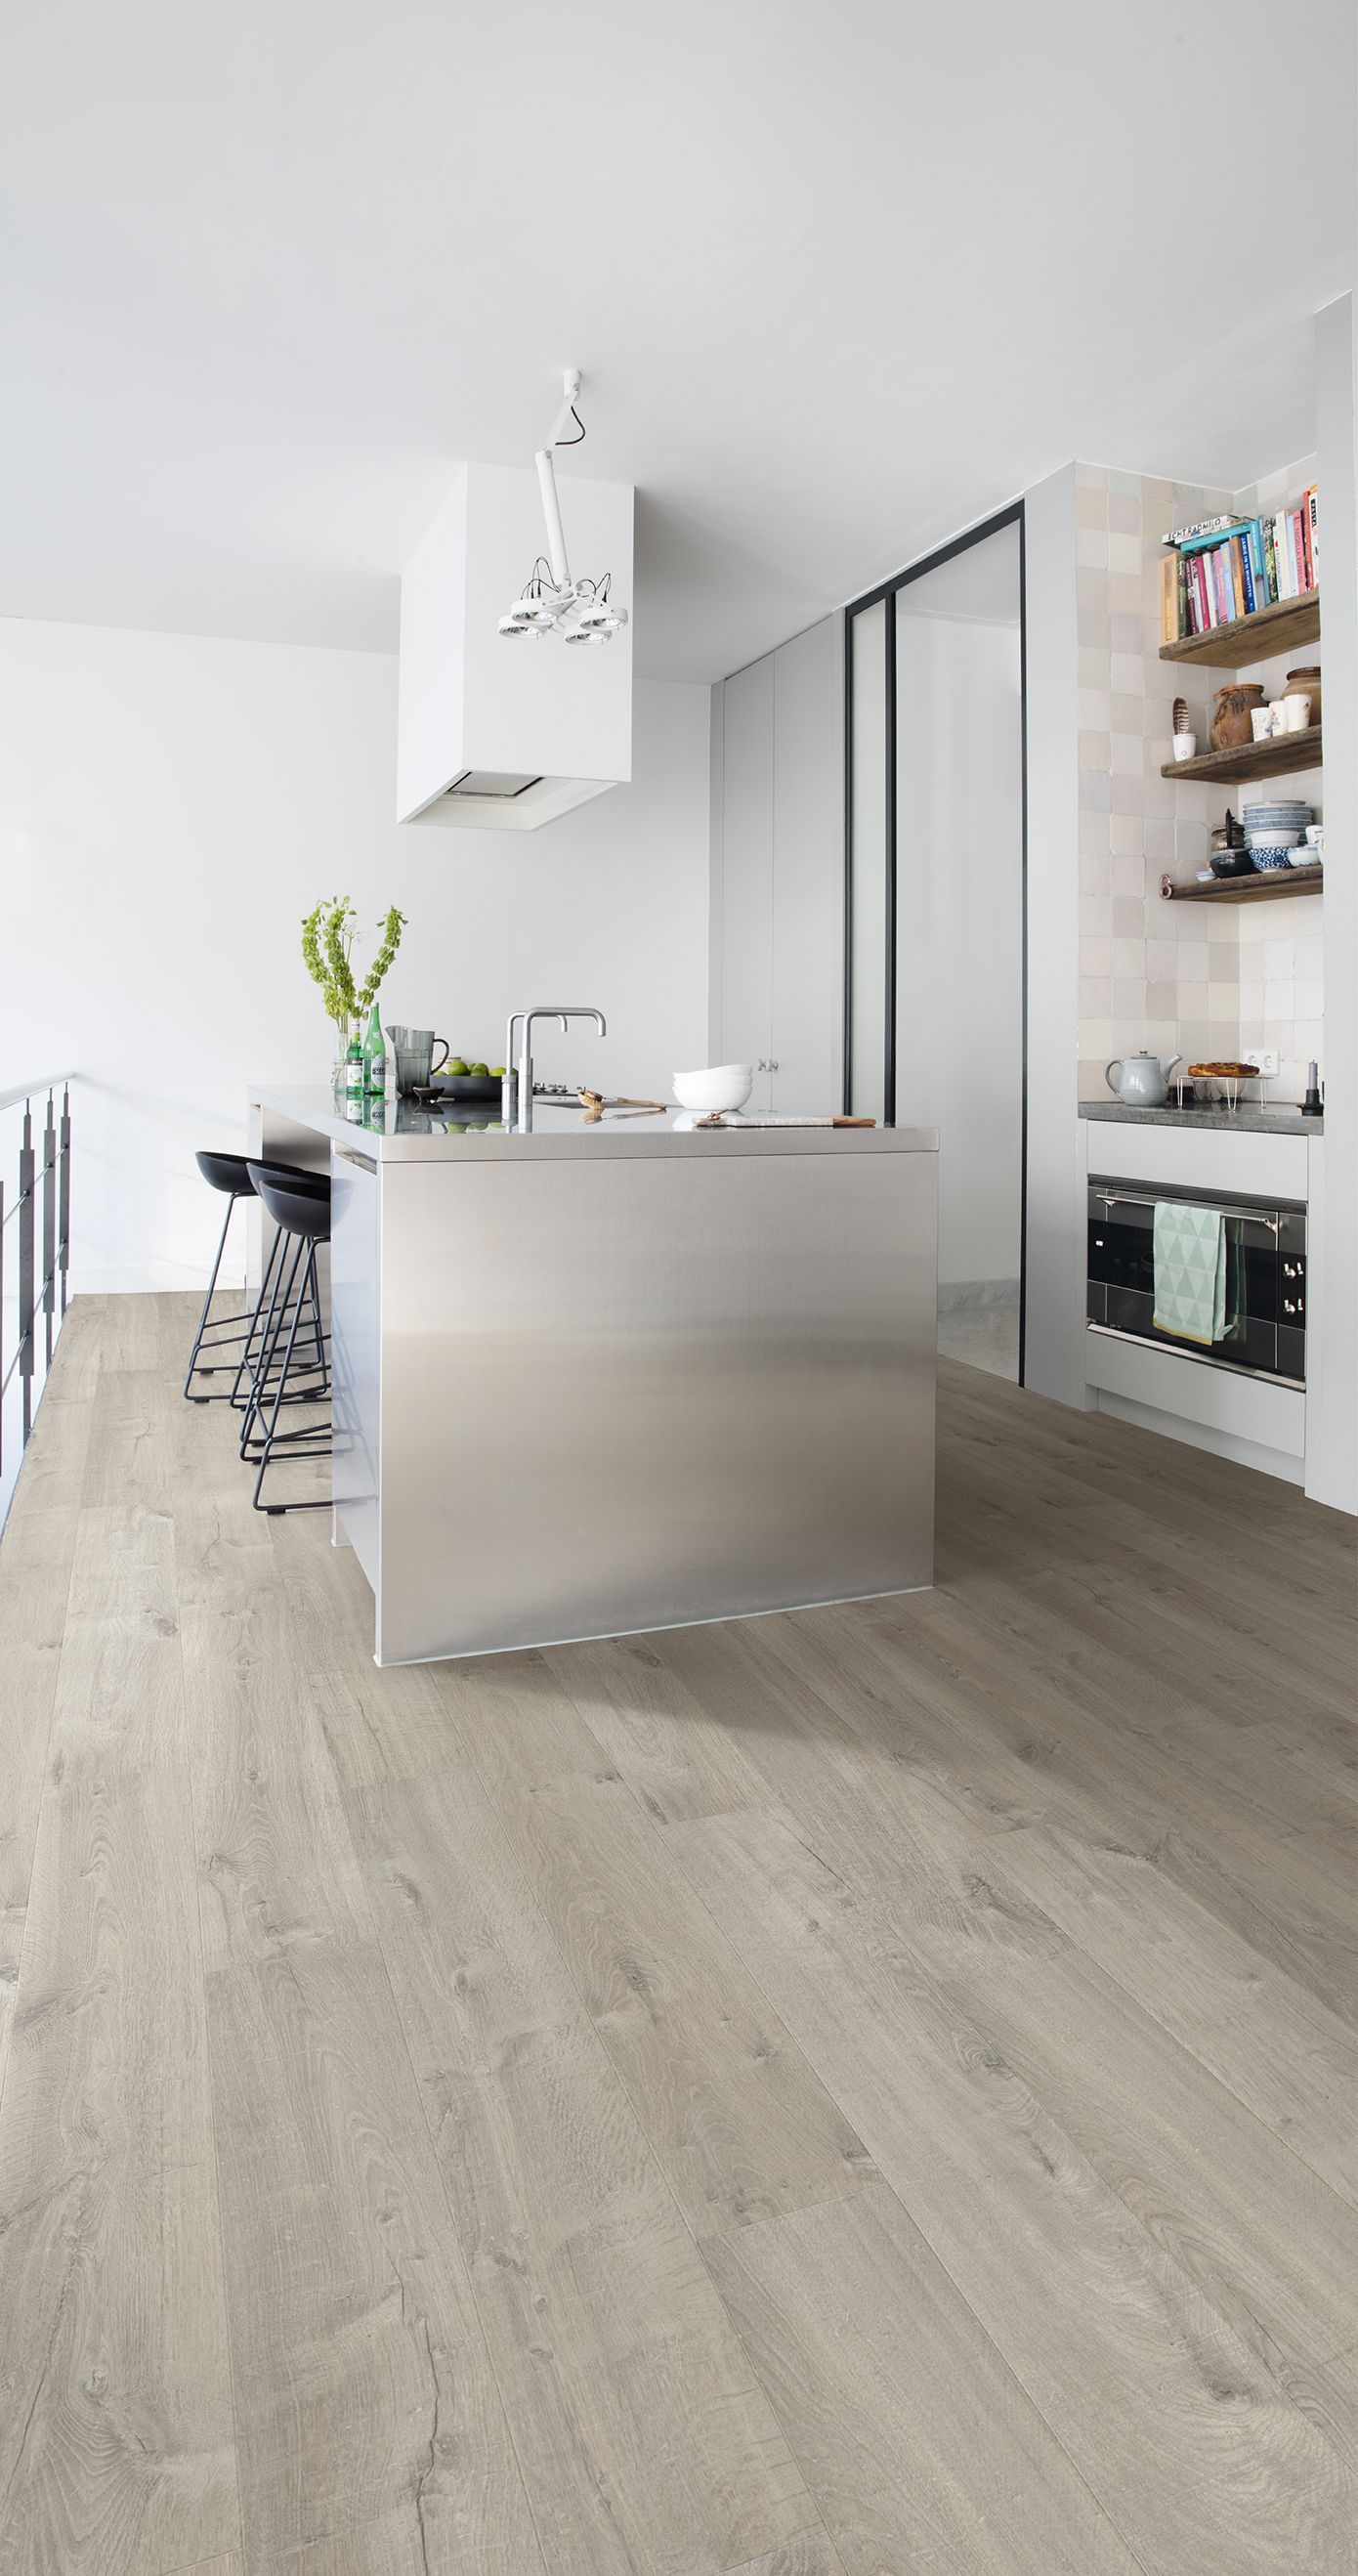 Waterproof Laminate Flooring Is A Great Option For Any Room